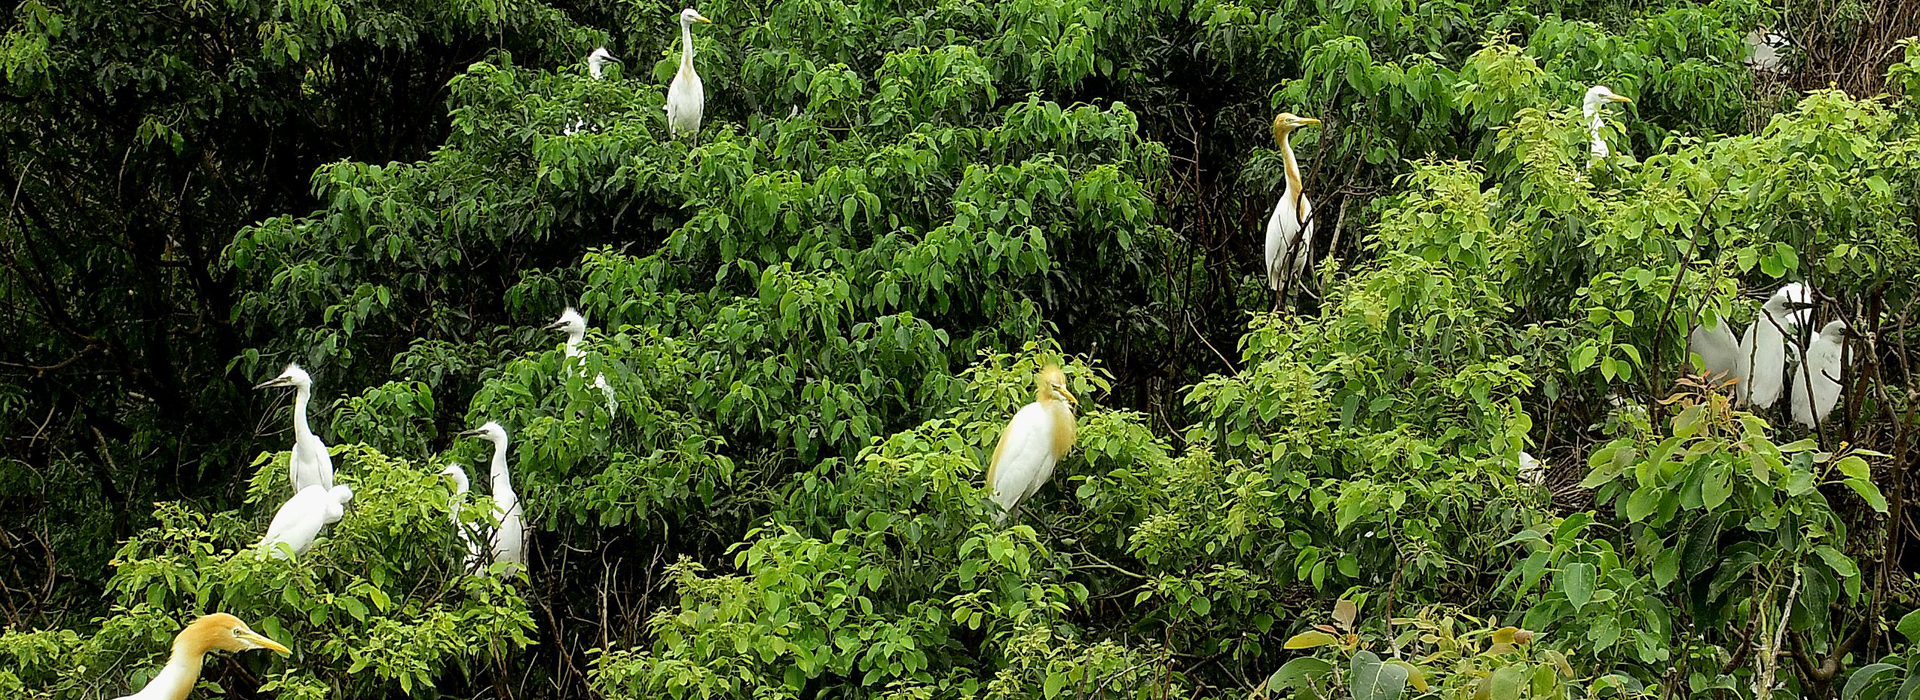 Camphor tree forest in Hai'an home to numerous migratory birds